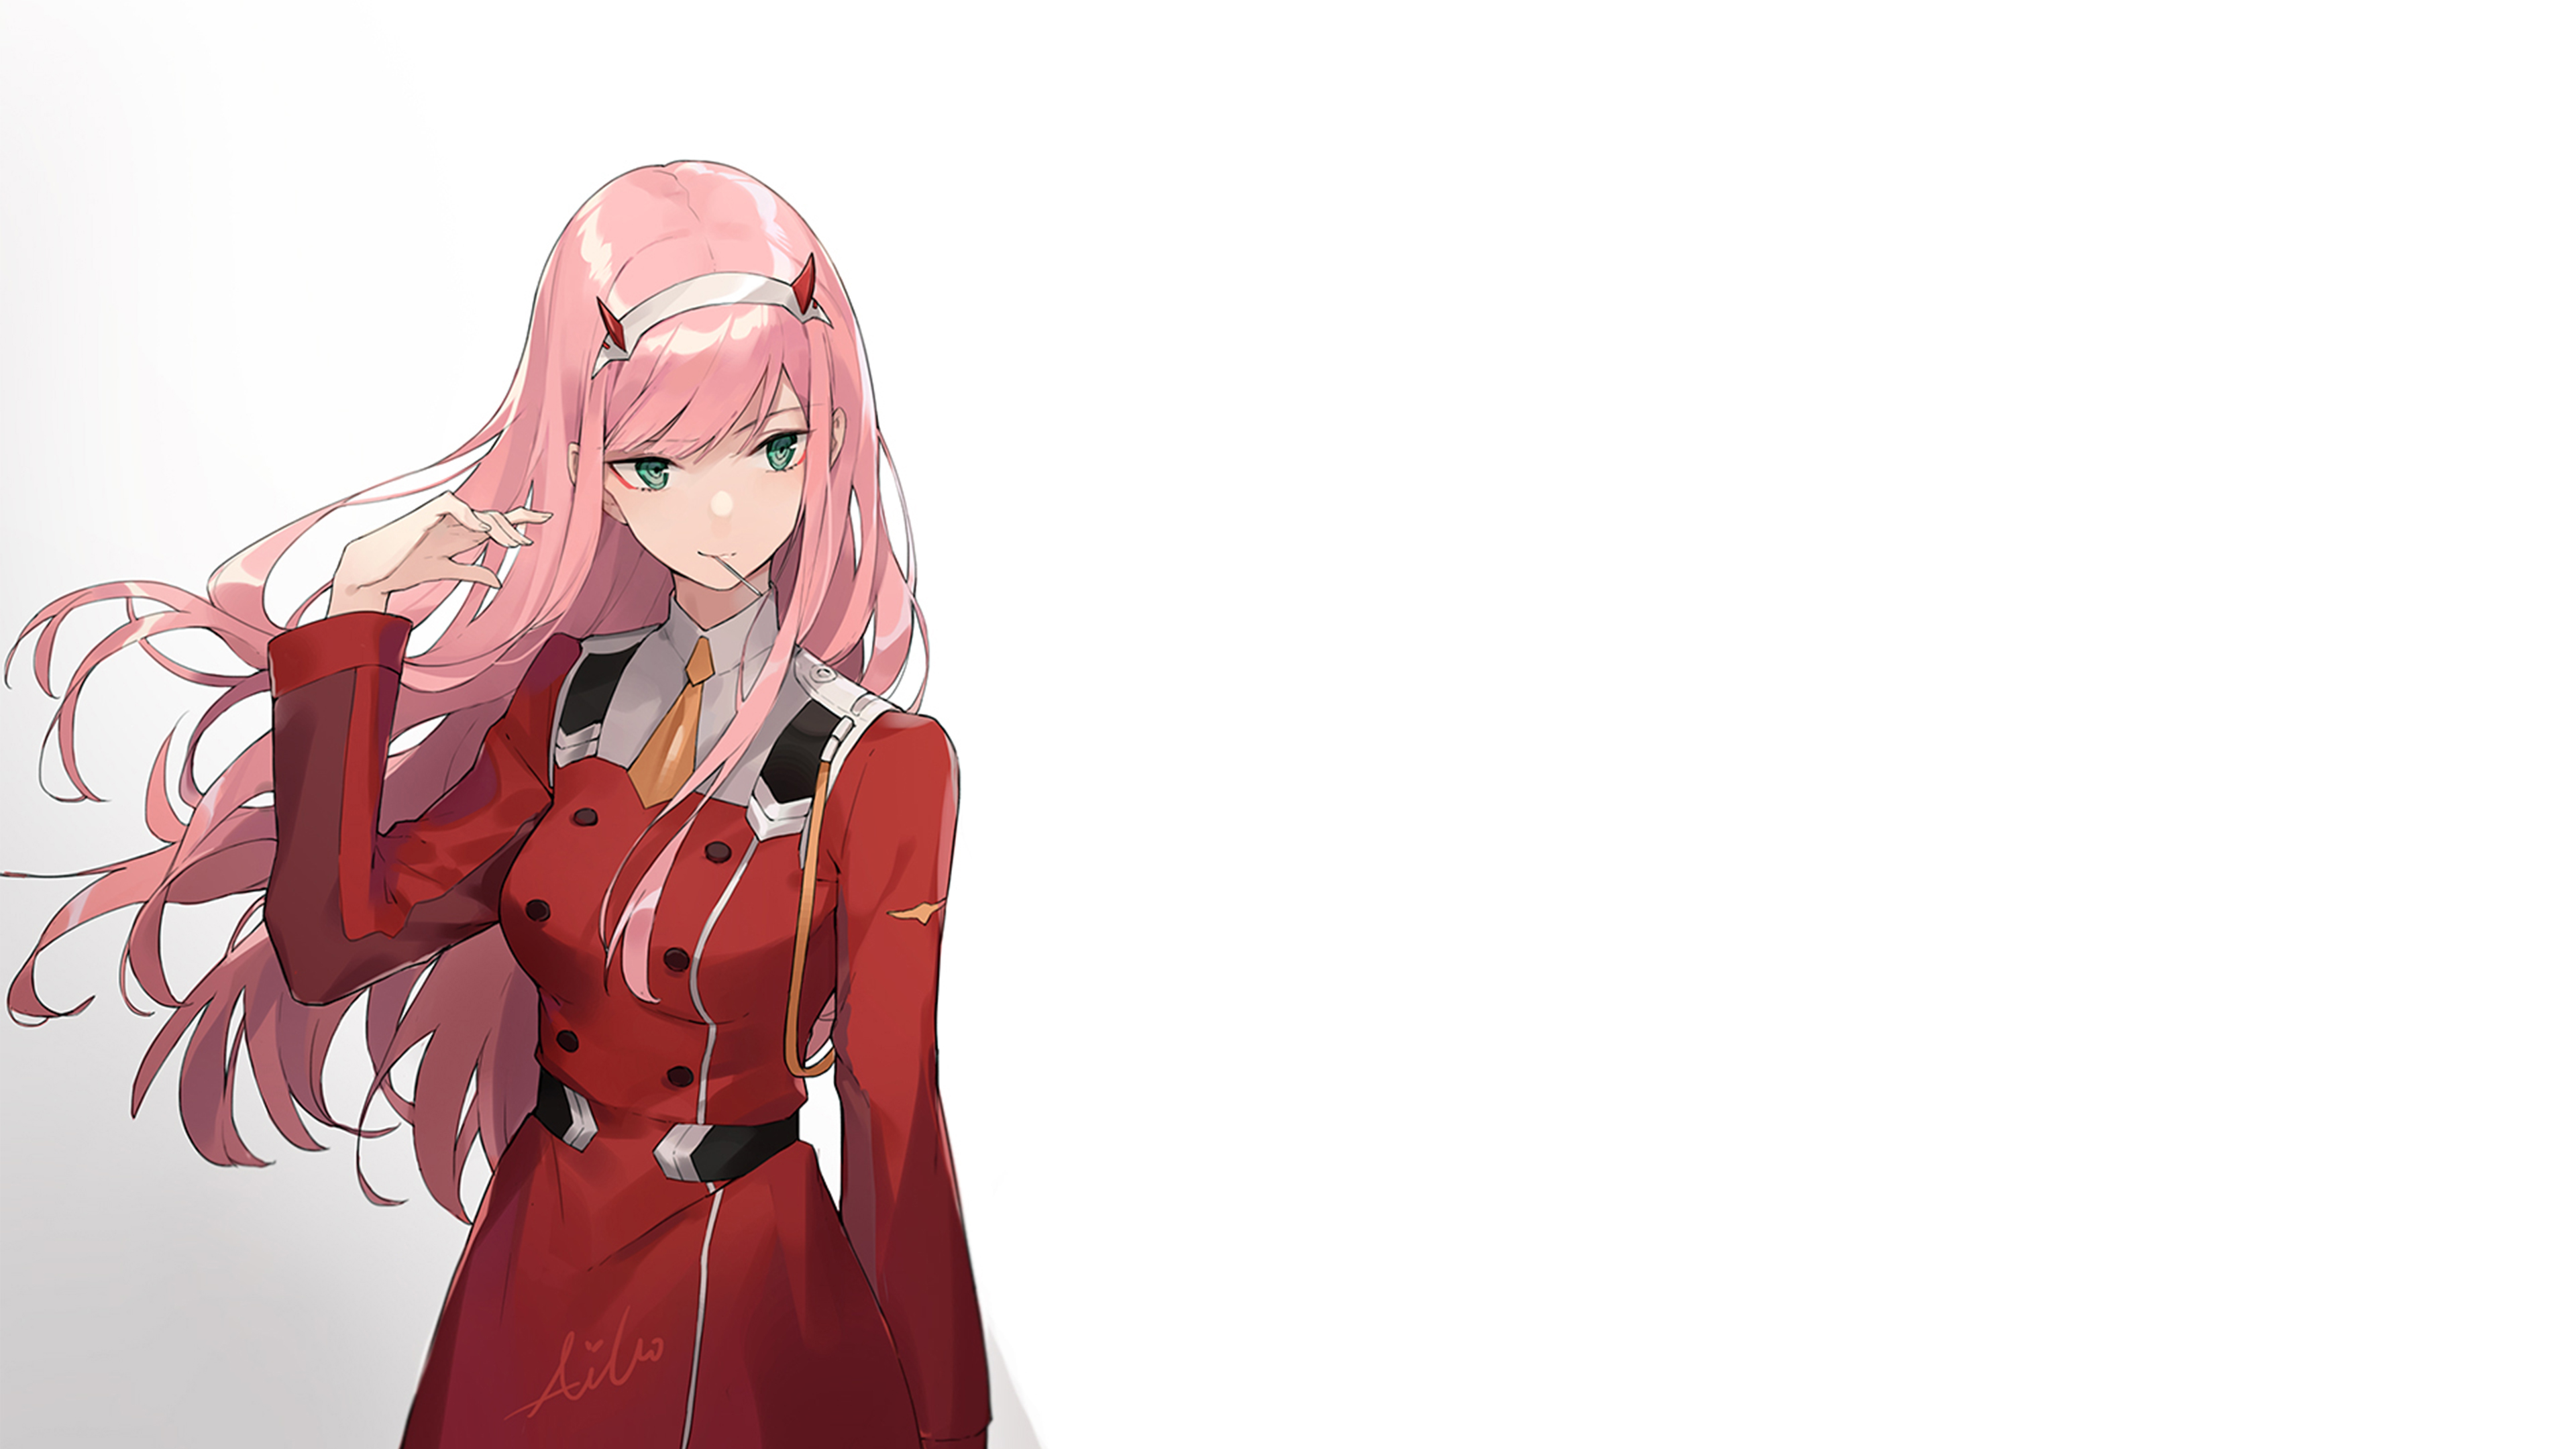 Darling In The Franxx 002 4k Ultra Hd Wallpaper Background